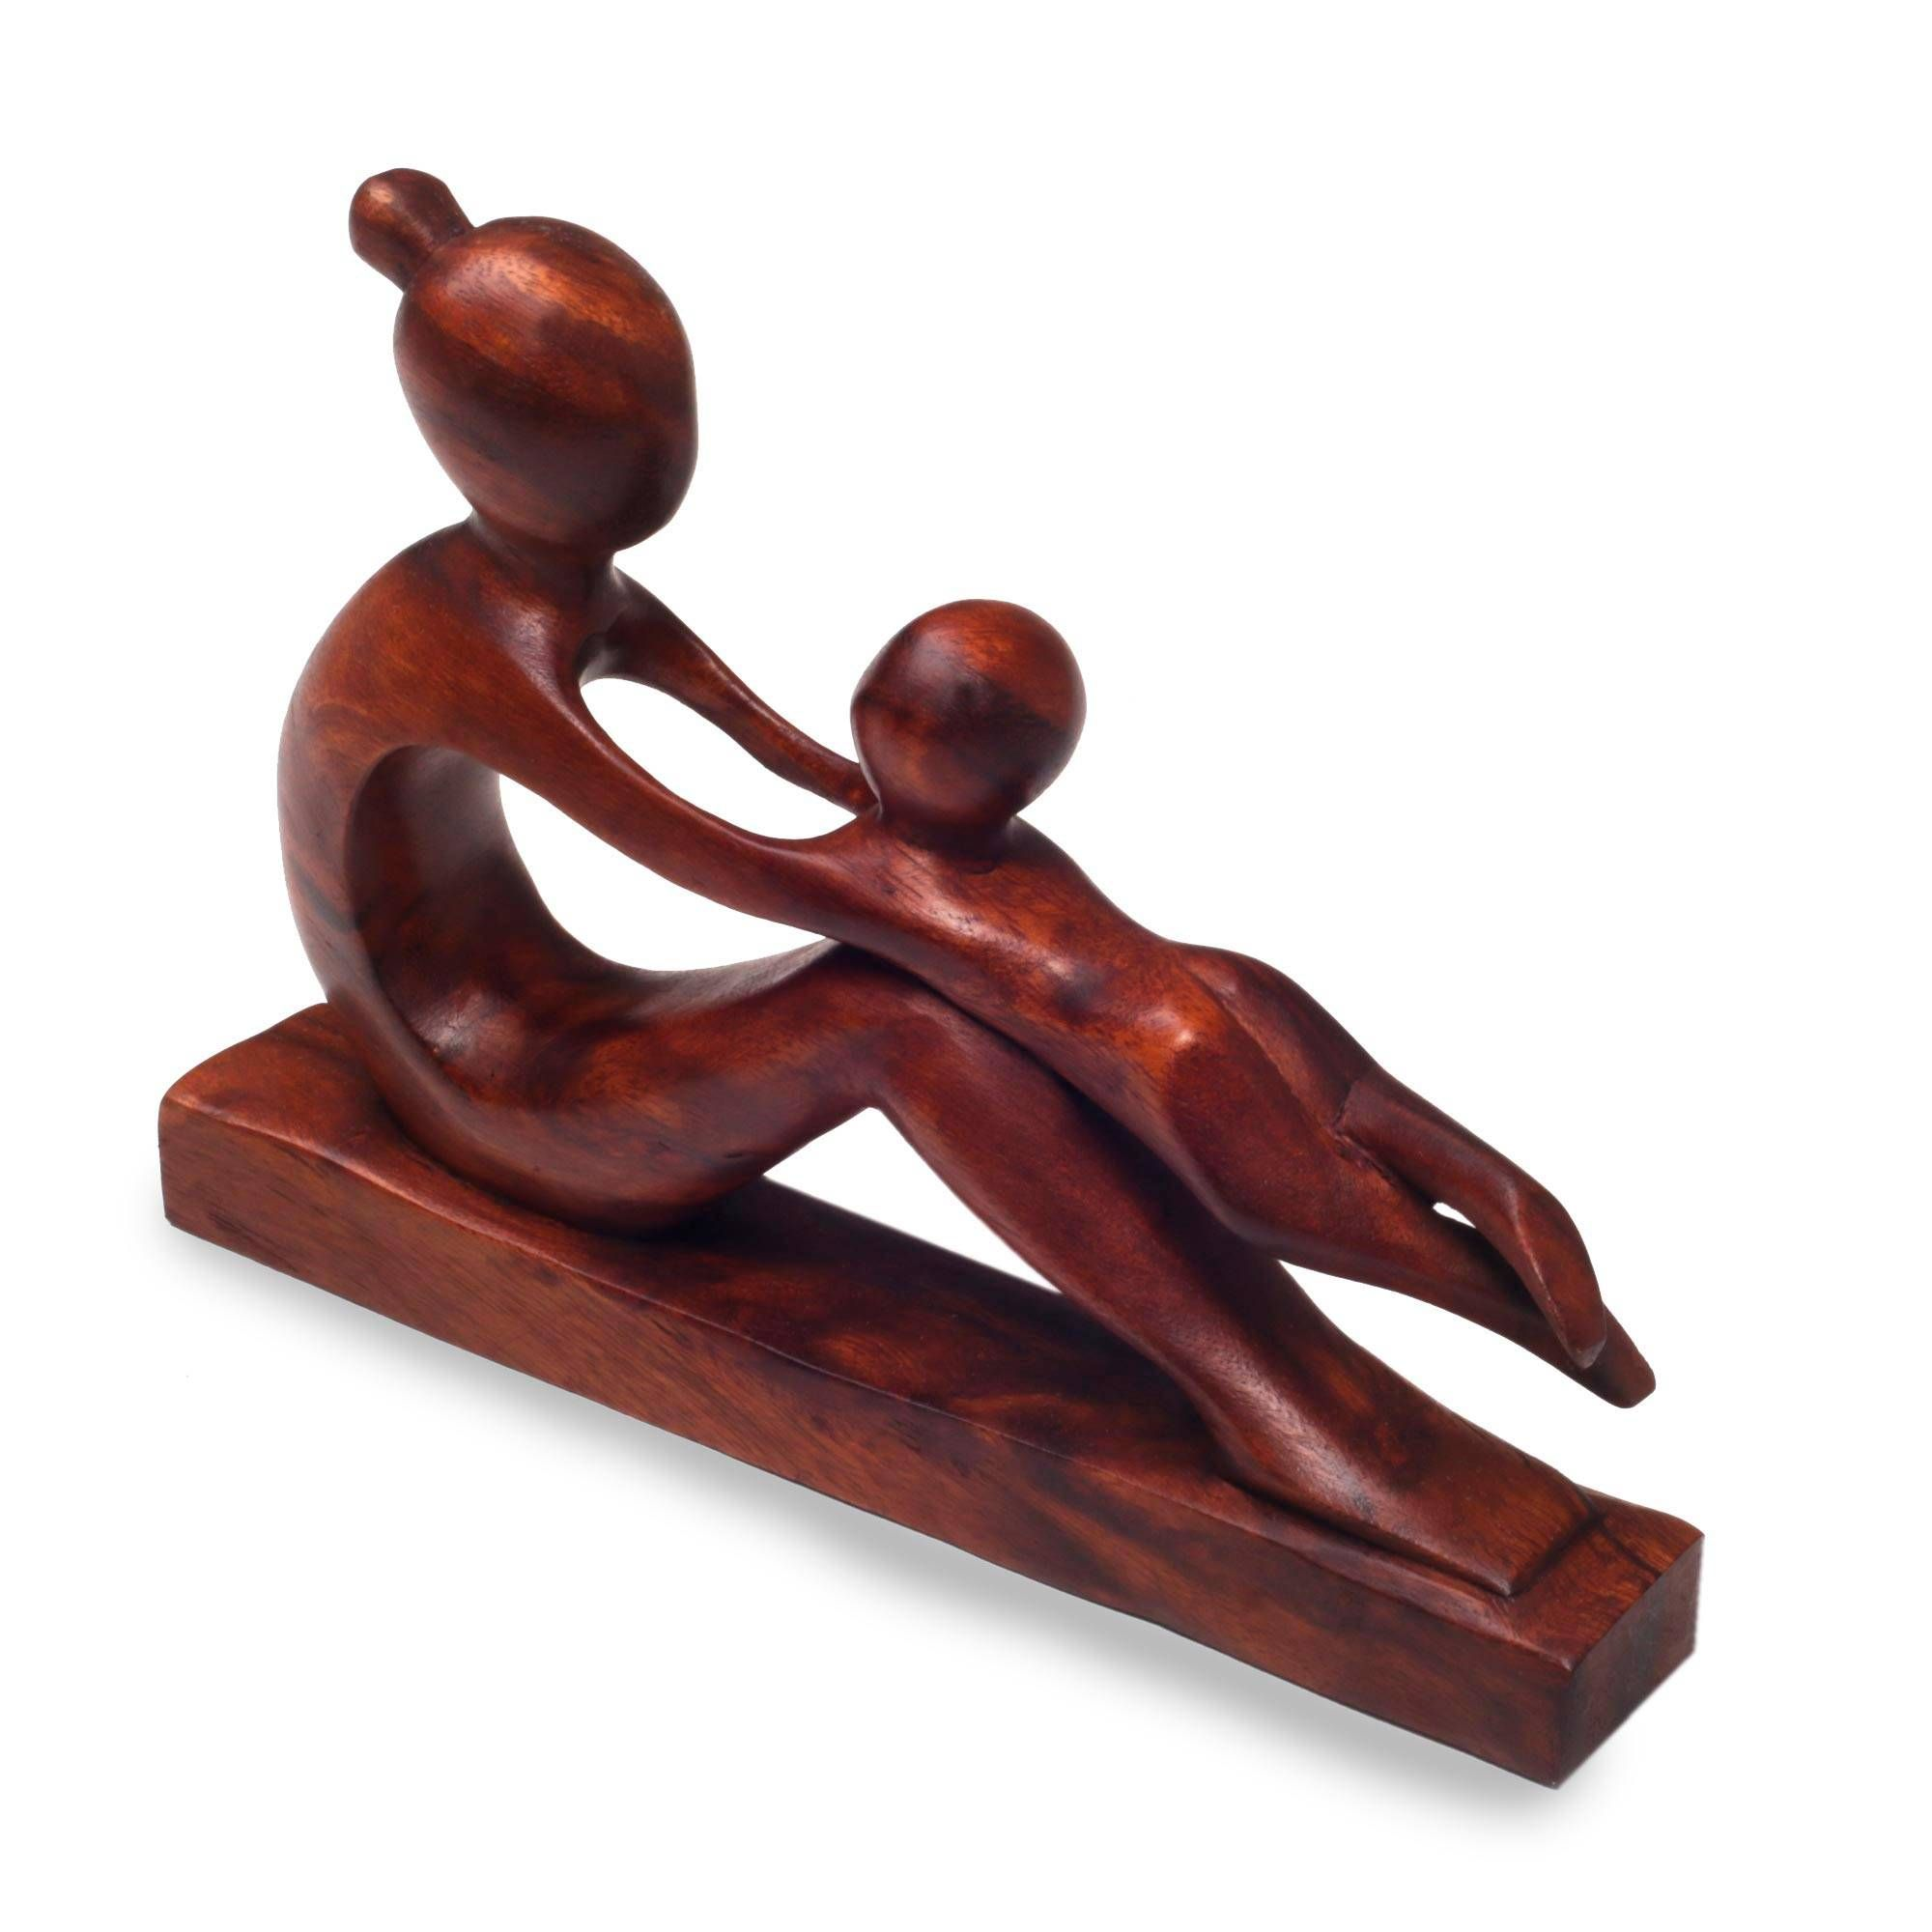 54773ce89 Unicef UK Market | Hand-Carved Suar Wood Mother and Child Sculpture - A  Playful Moment